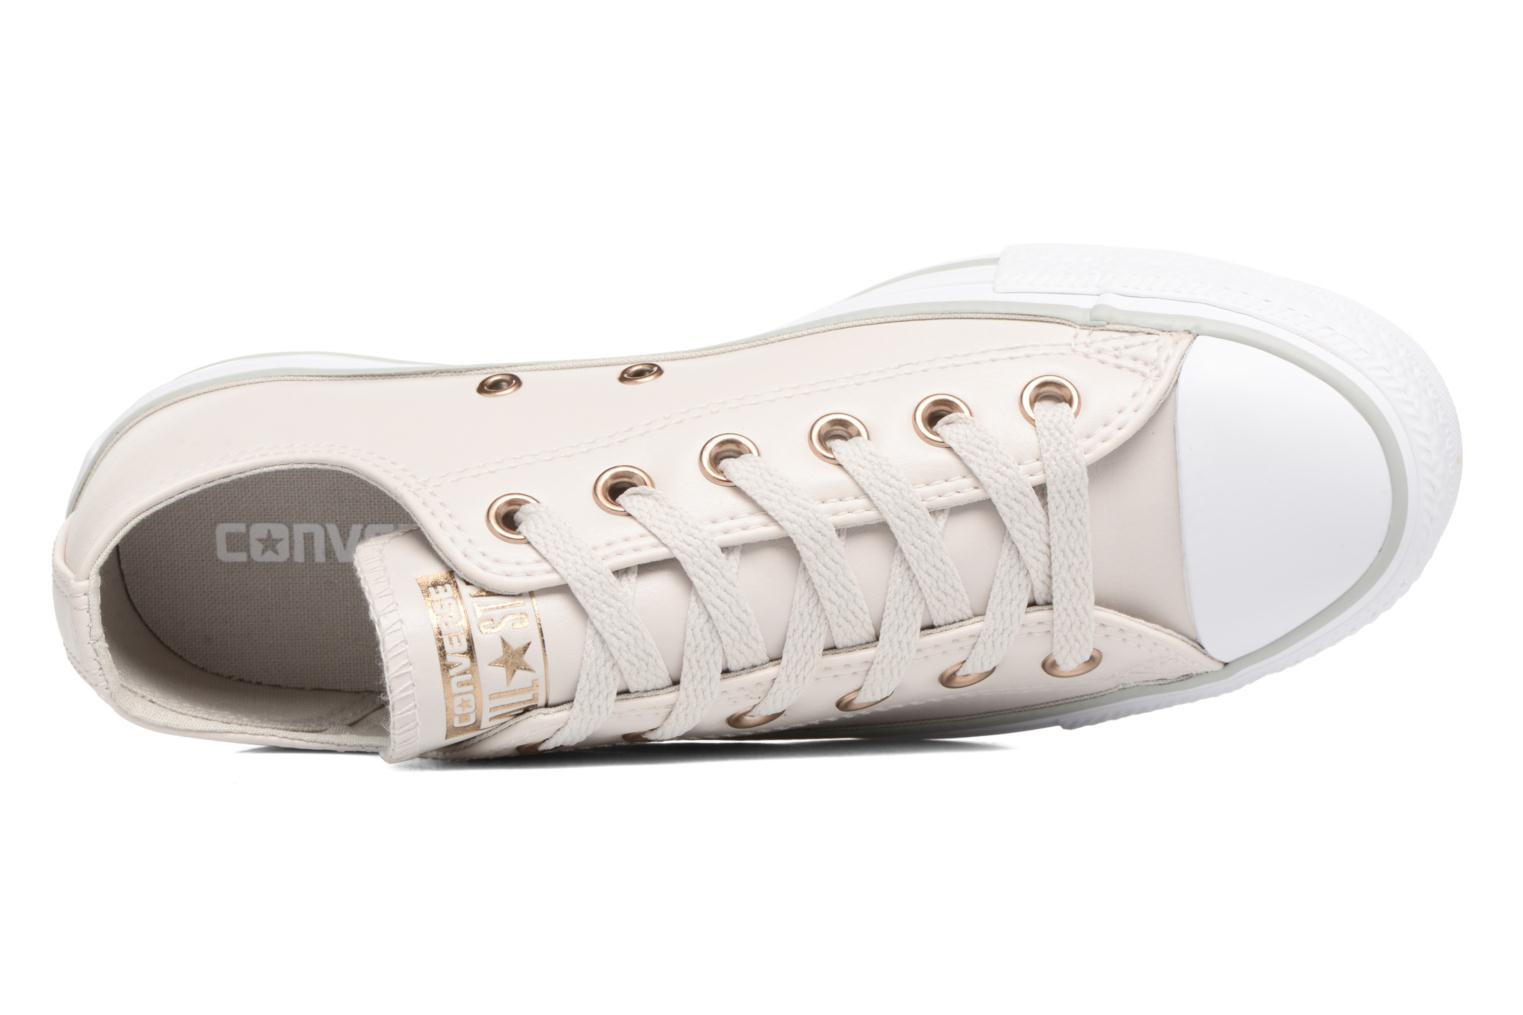 Chuck Taylor All Star Craft SL Ox Pale Putty/White/Mouse